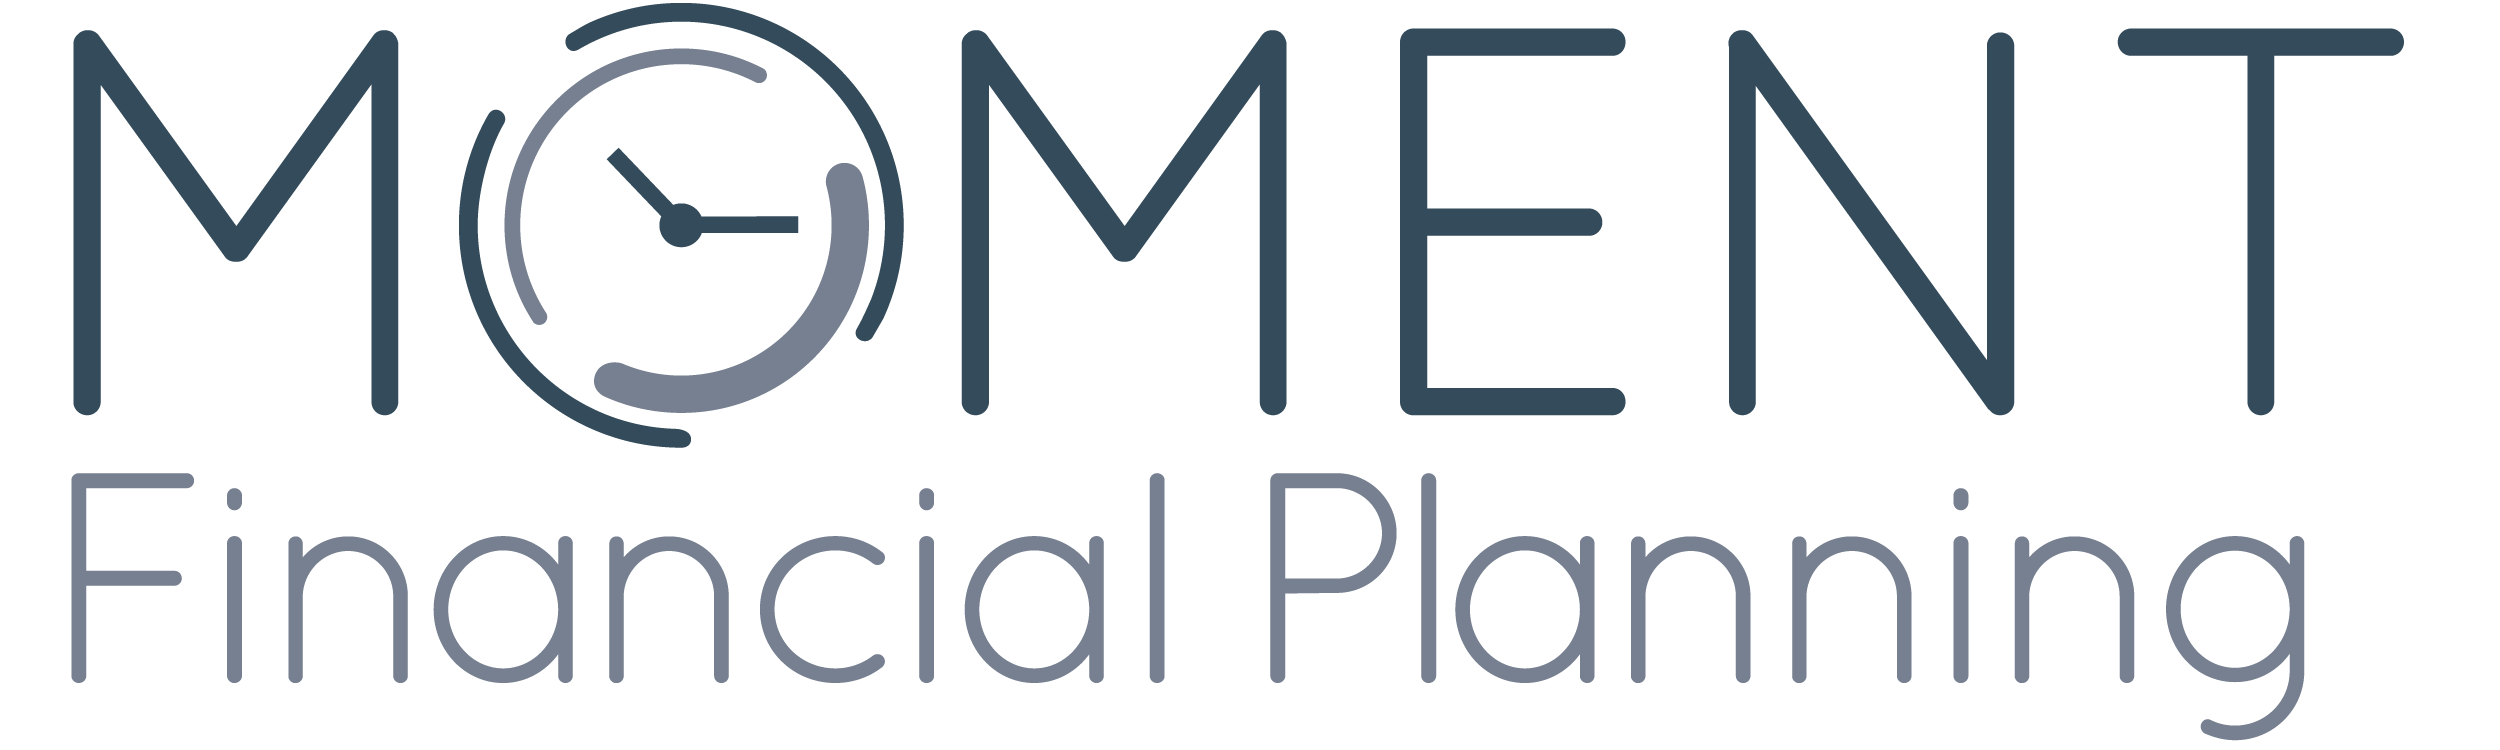 Moment Financial Planning